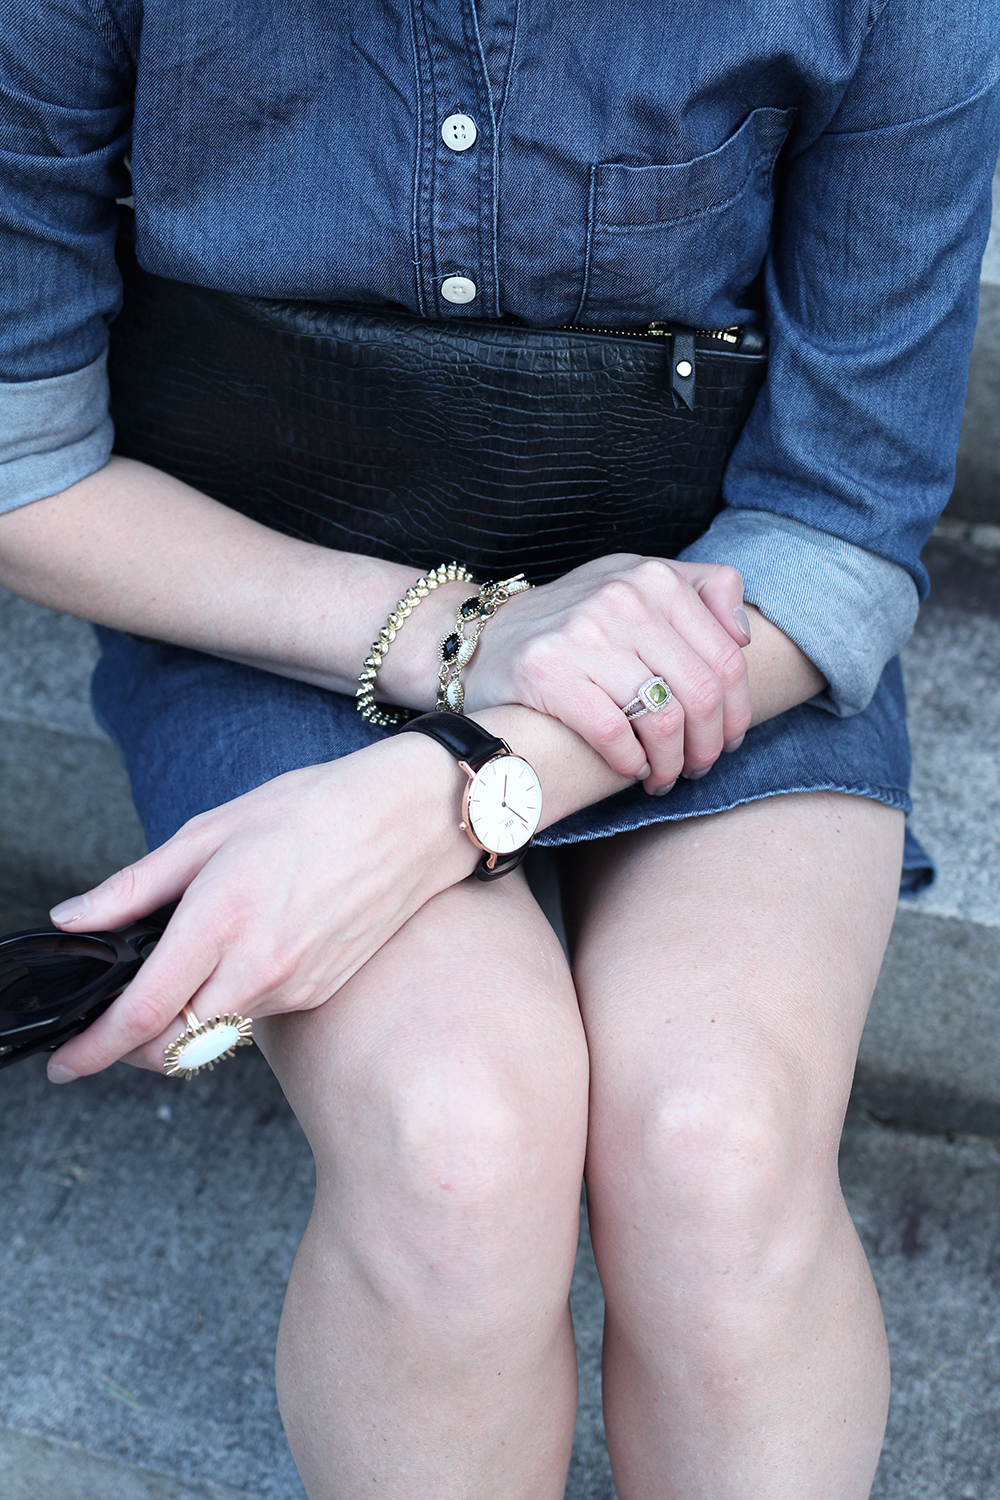 Black and Rose Gold Watch, Kendra Scott Jewelry, Denim Dress